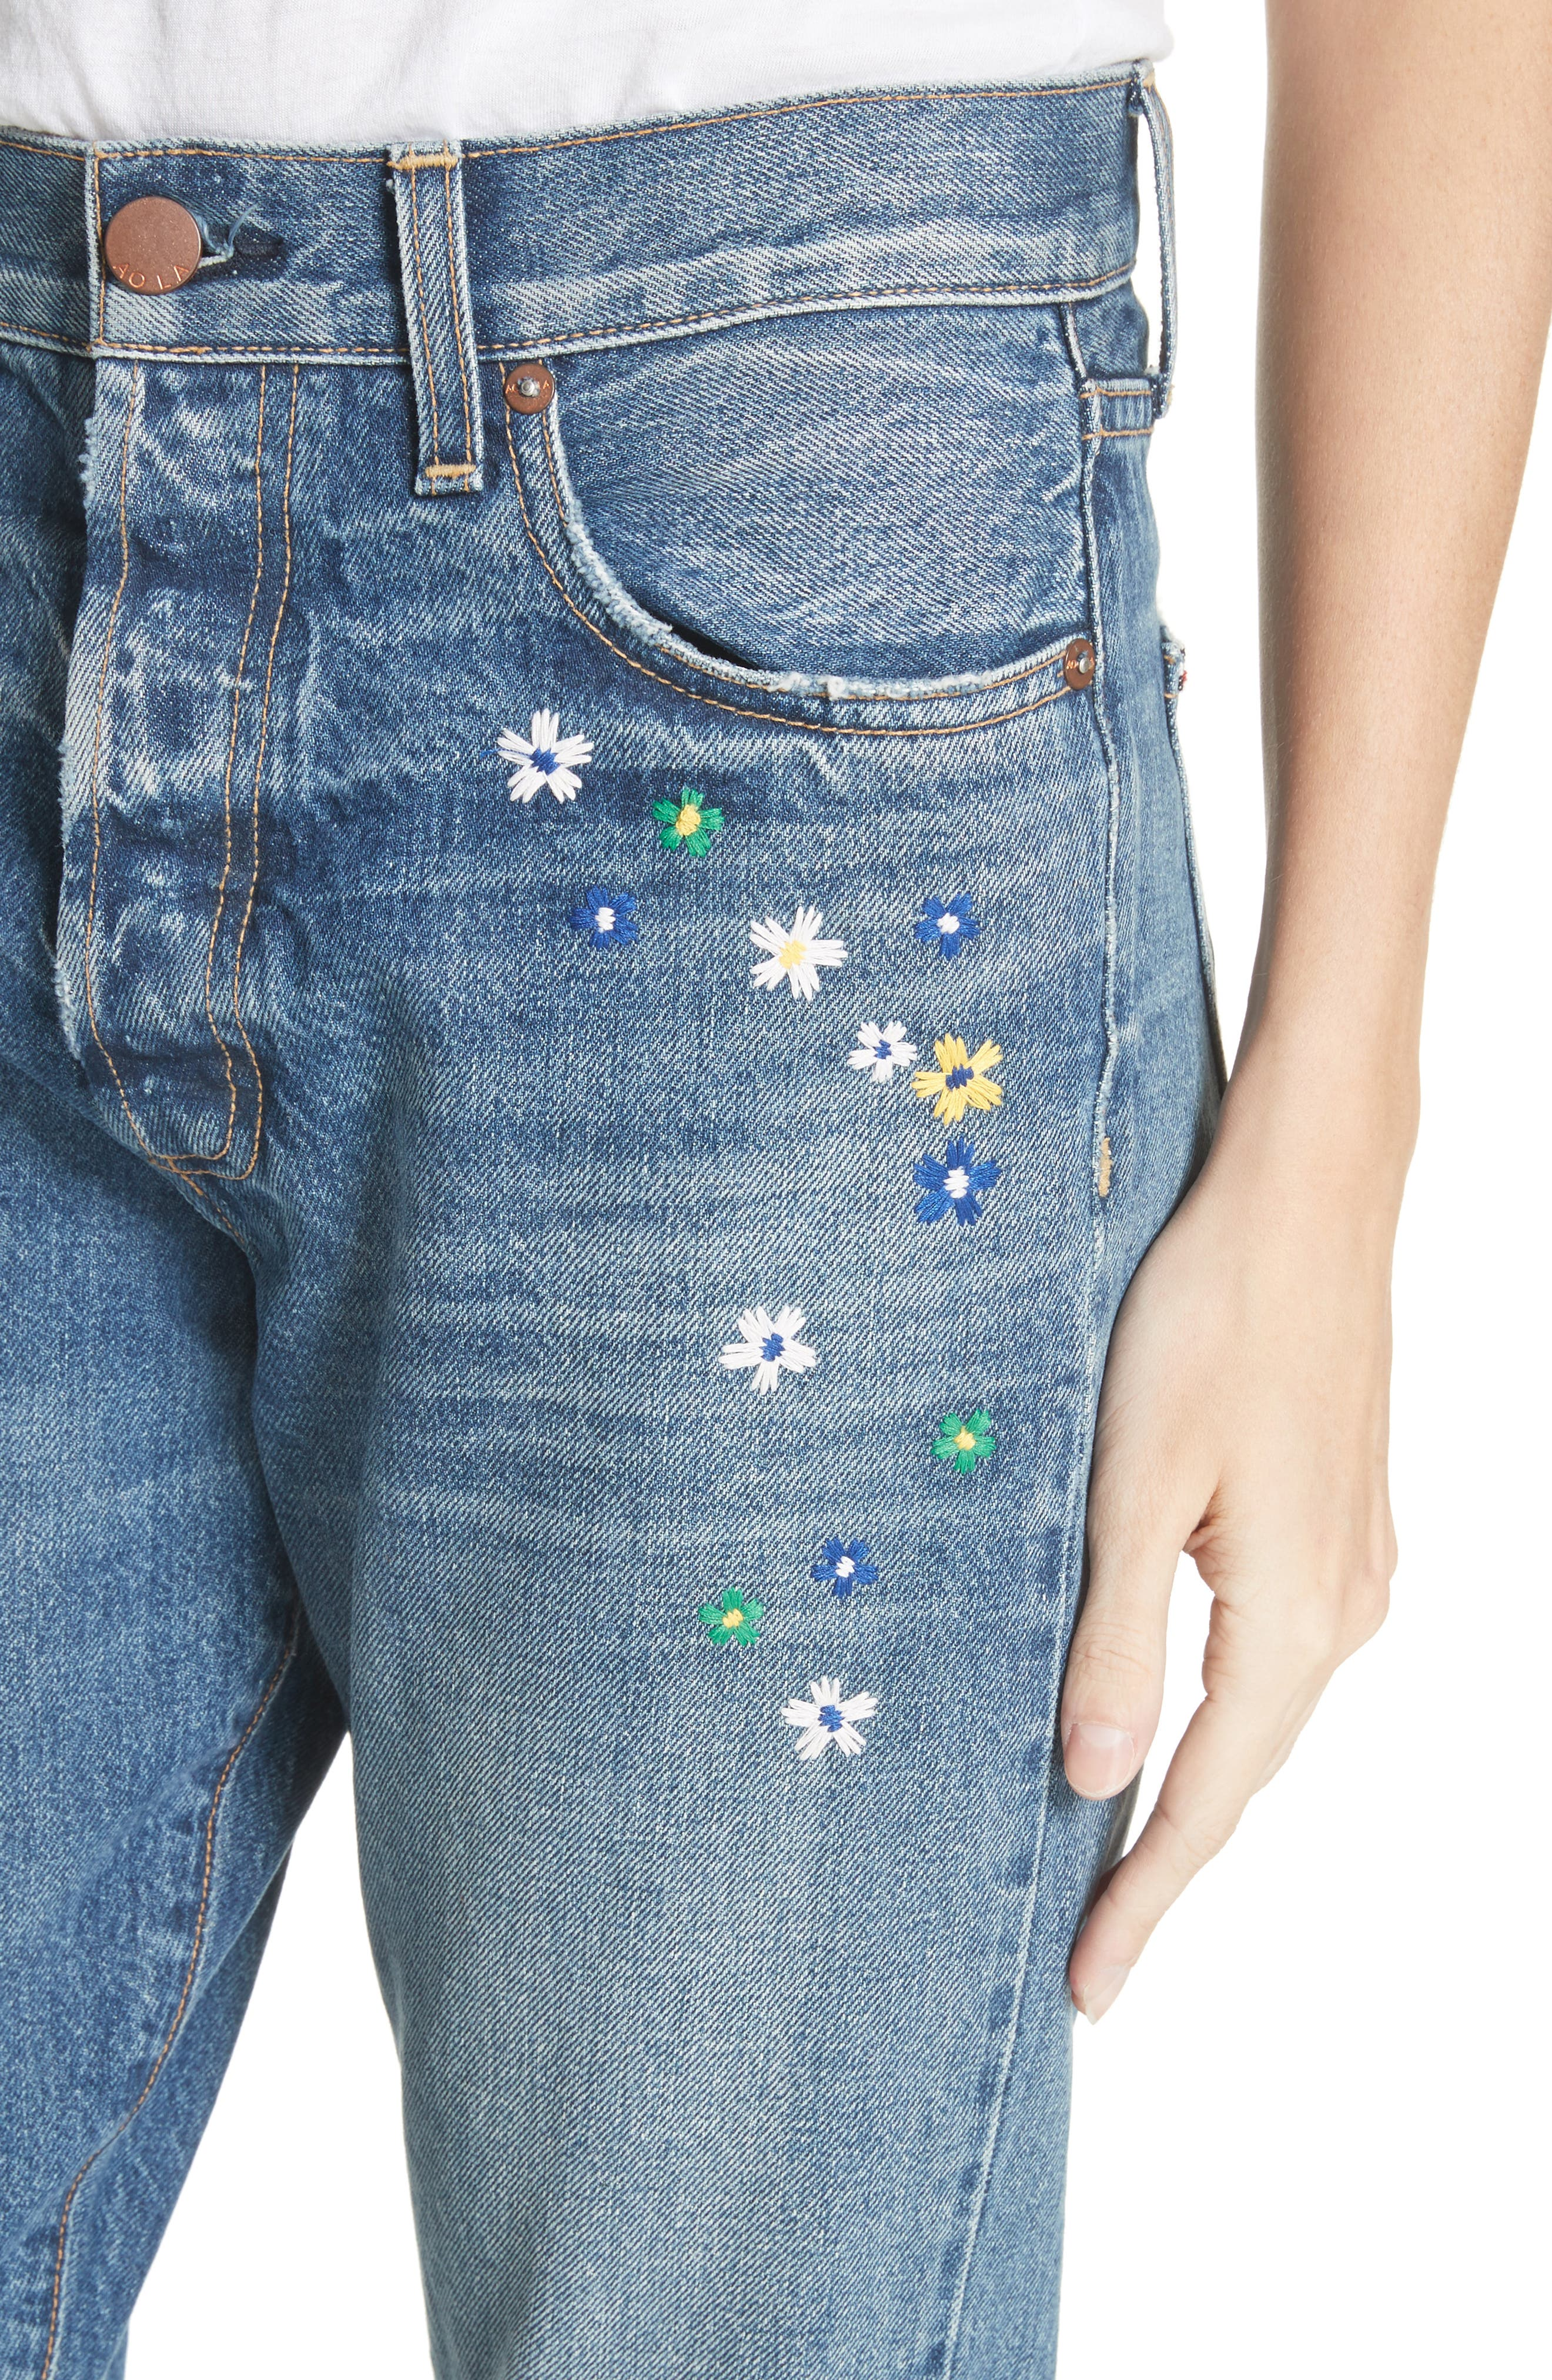 AO.LA Amazing Embroidered Slim Girlfriend Jeans,                             Alternate thumbnail 4, color,                             496